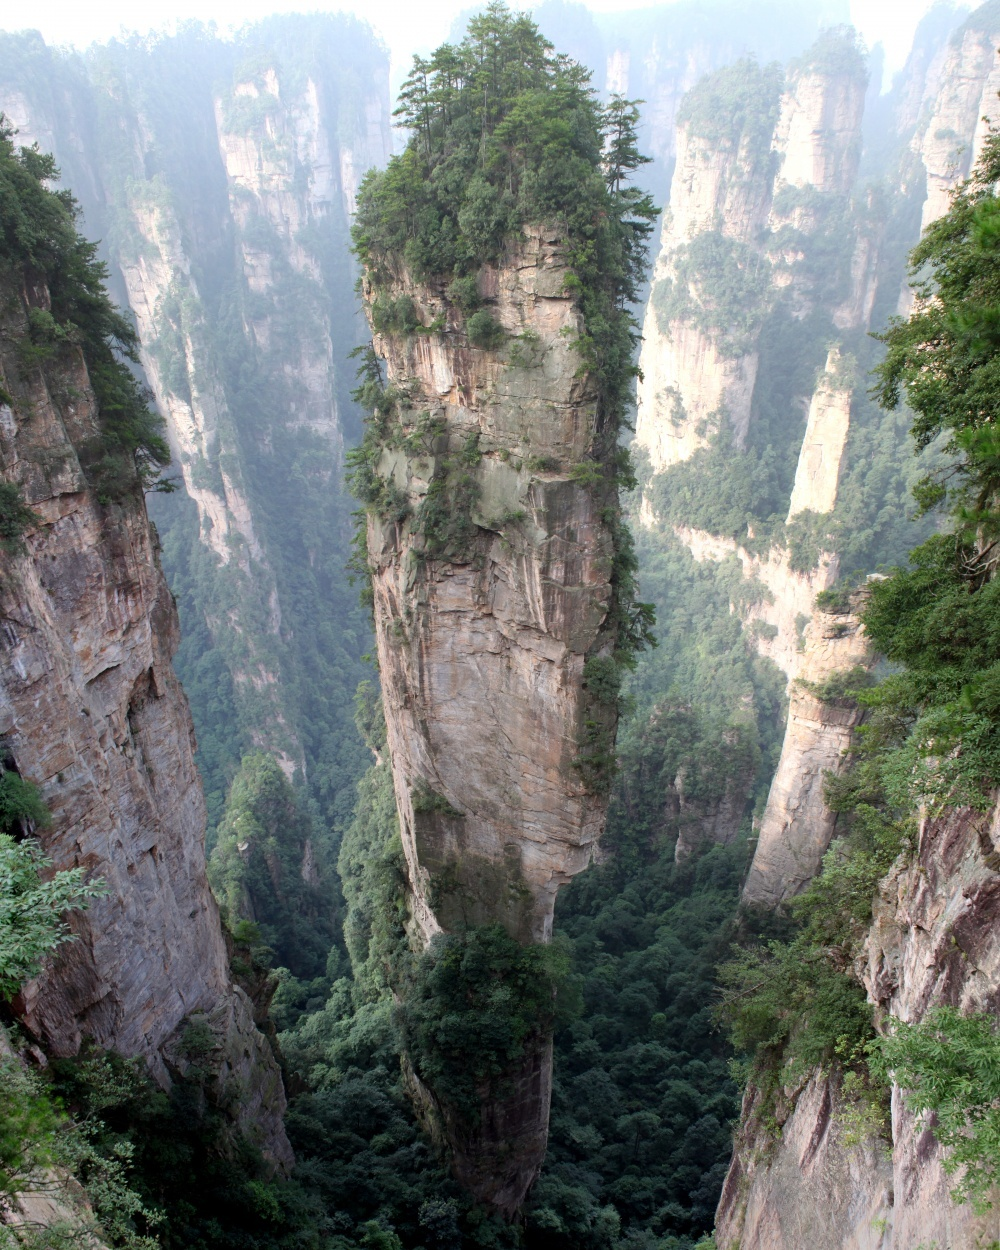 Tianzi Mountain (China) — inspiration for the landscapes of Pandora in Avatar